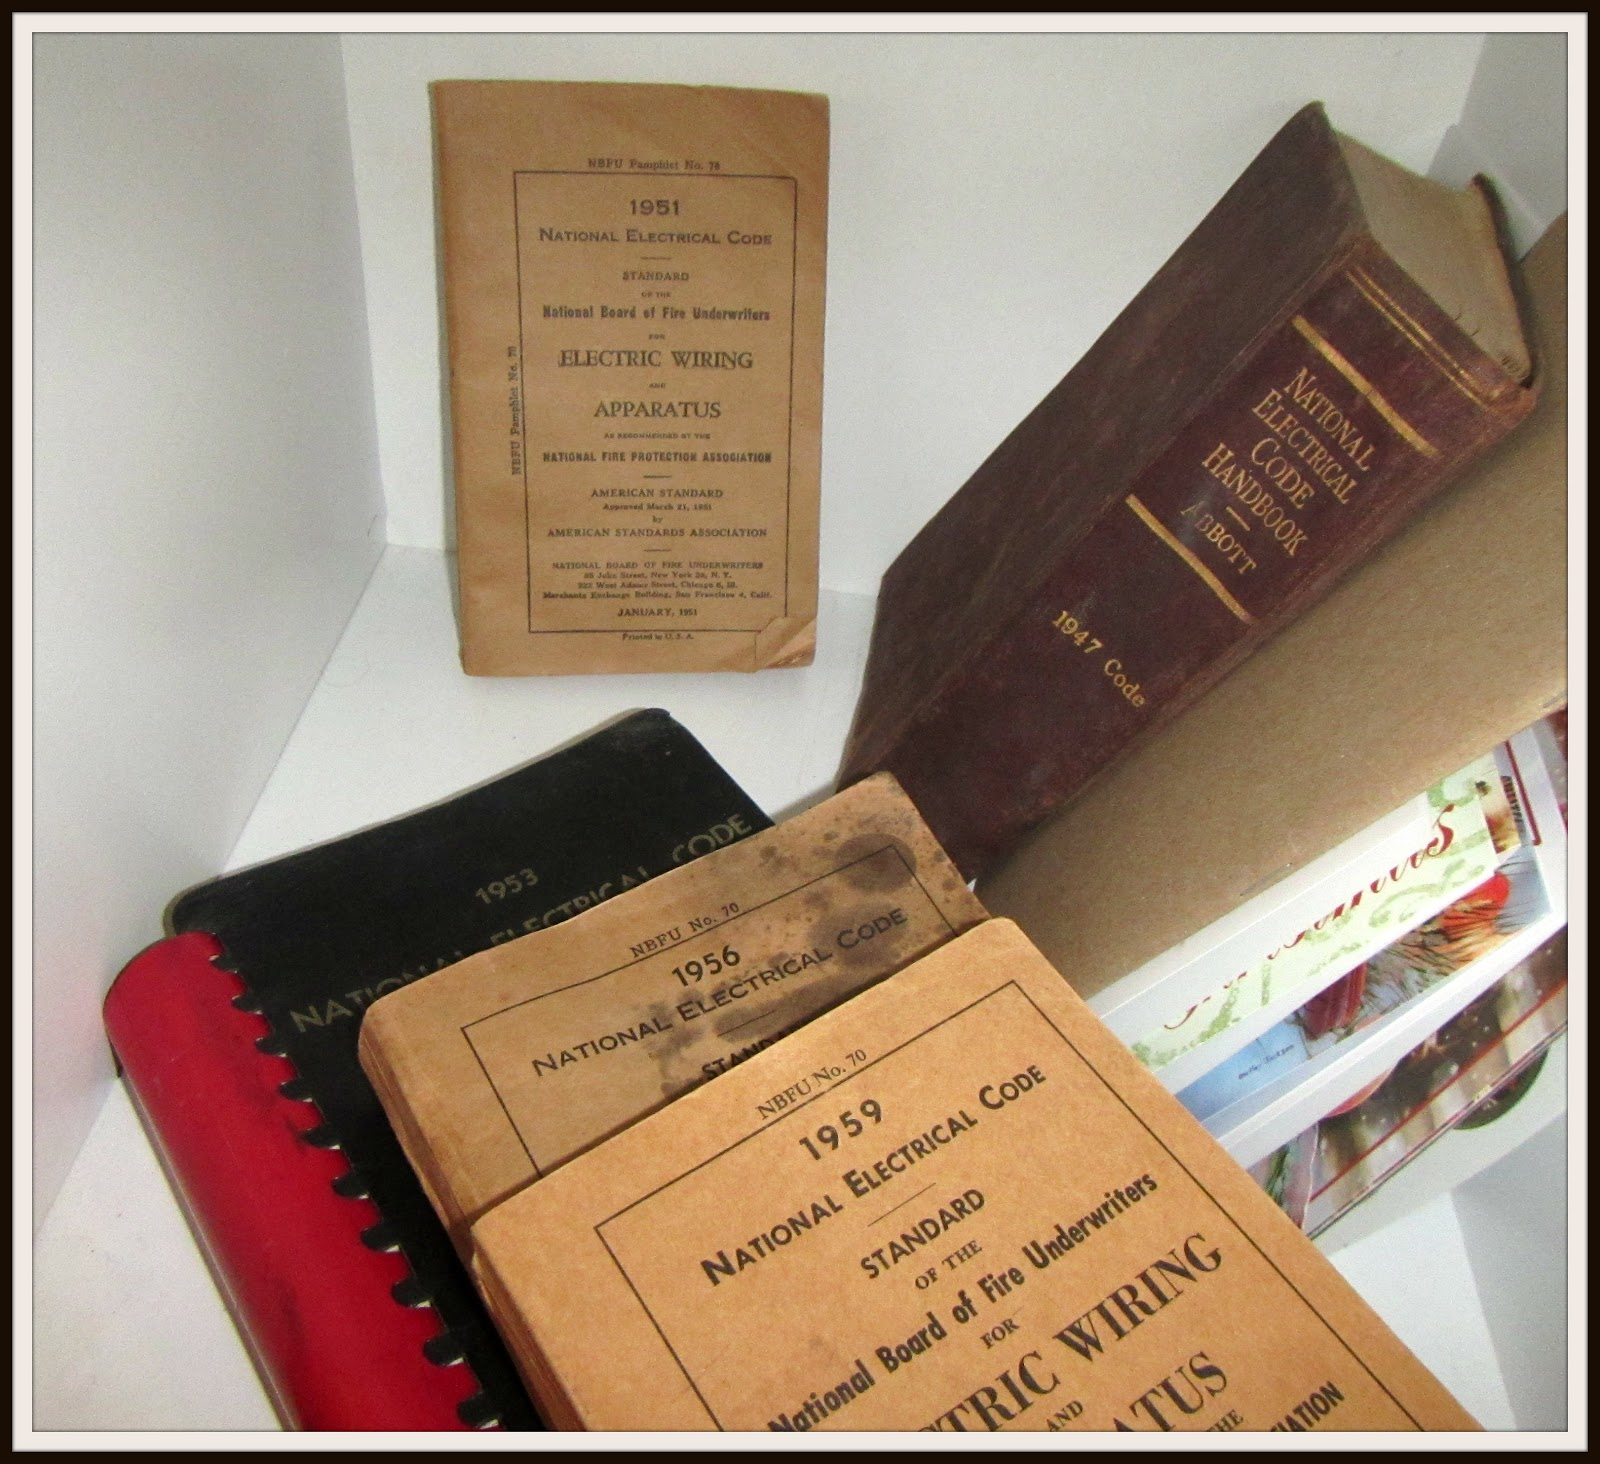 When men were men and sparkies played by the sparks ncw home nec code books 1959 to 1947 keyboard keysfo Images